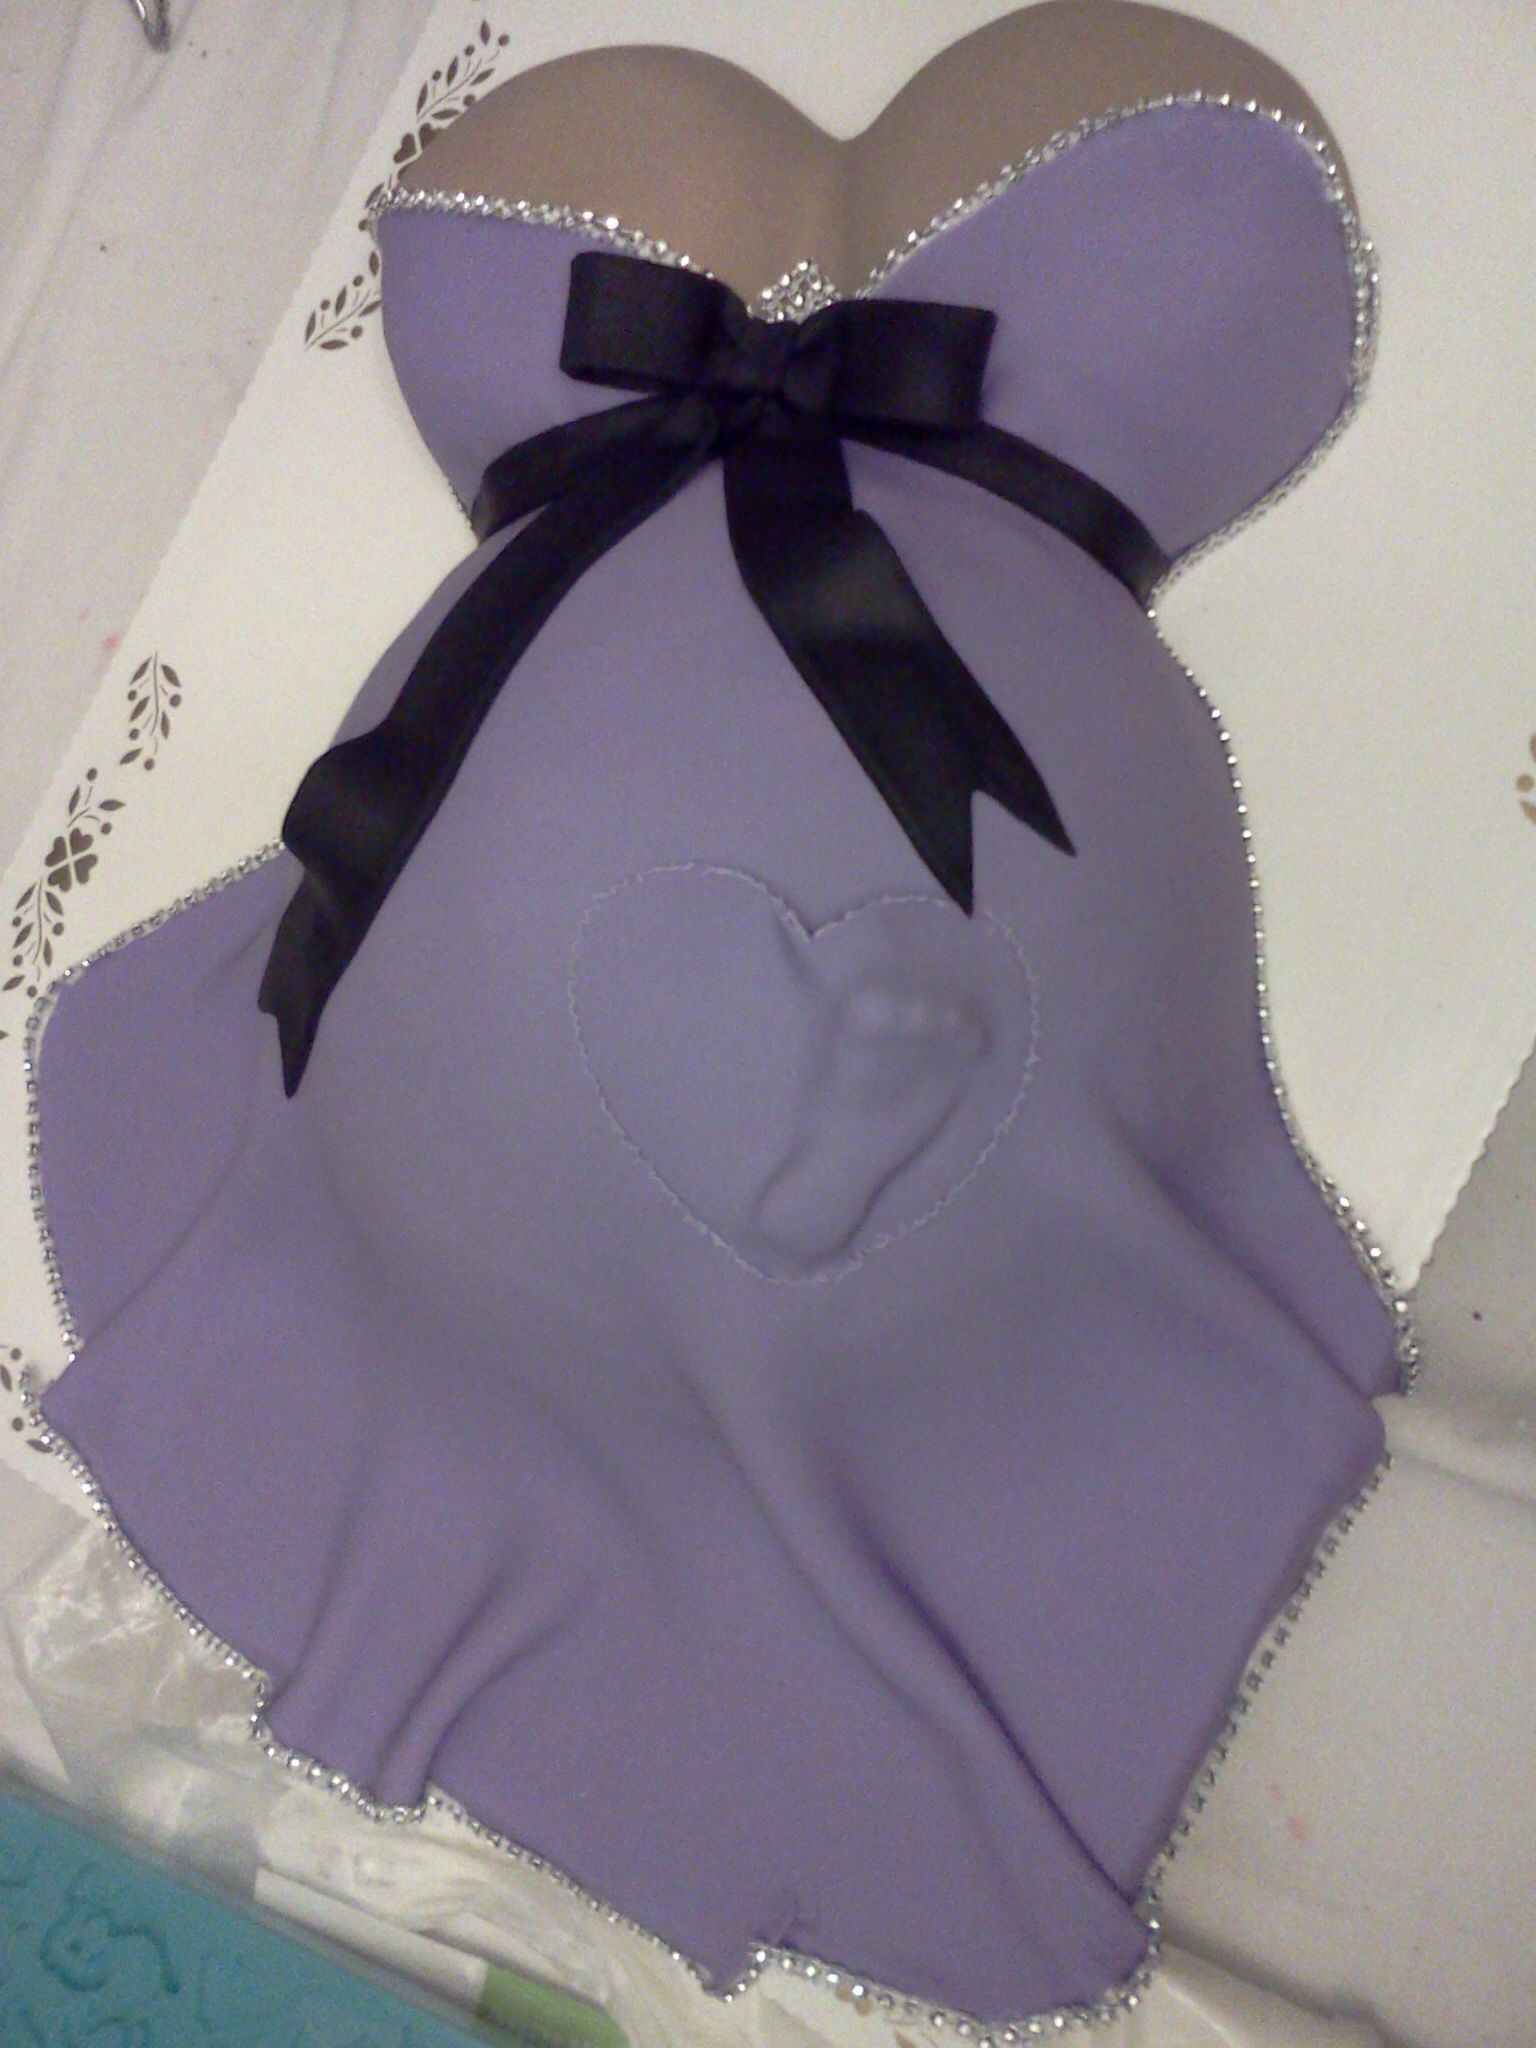 Baby shower pregnant belly cake baby footprint purple dress